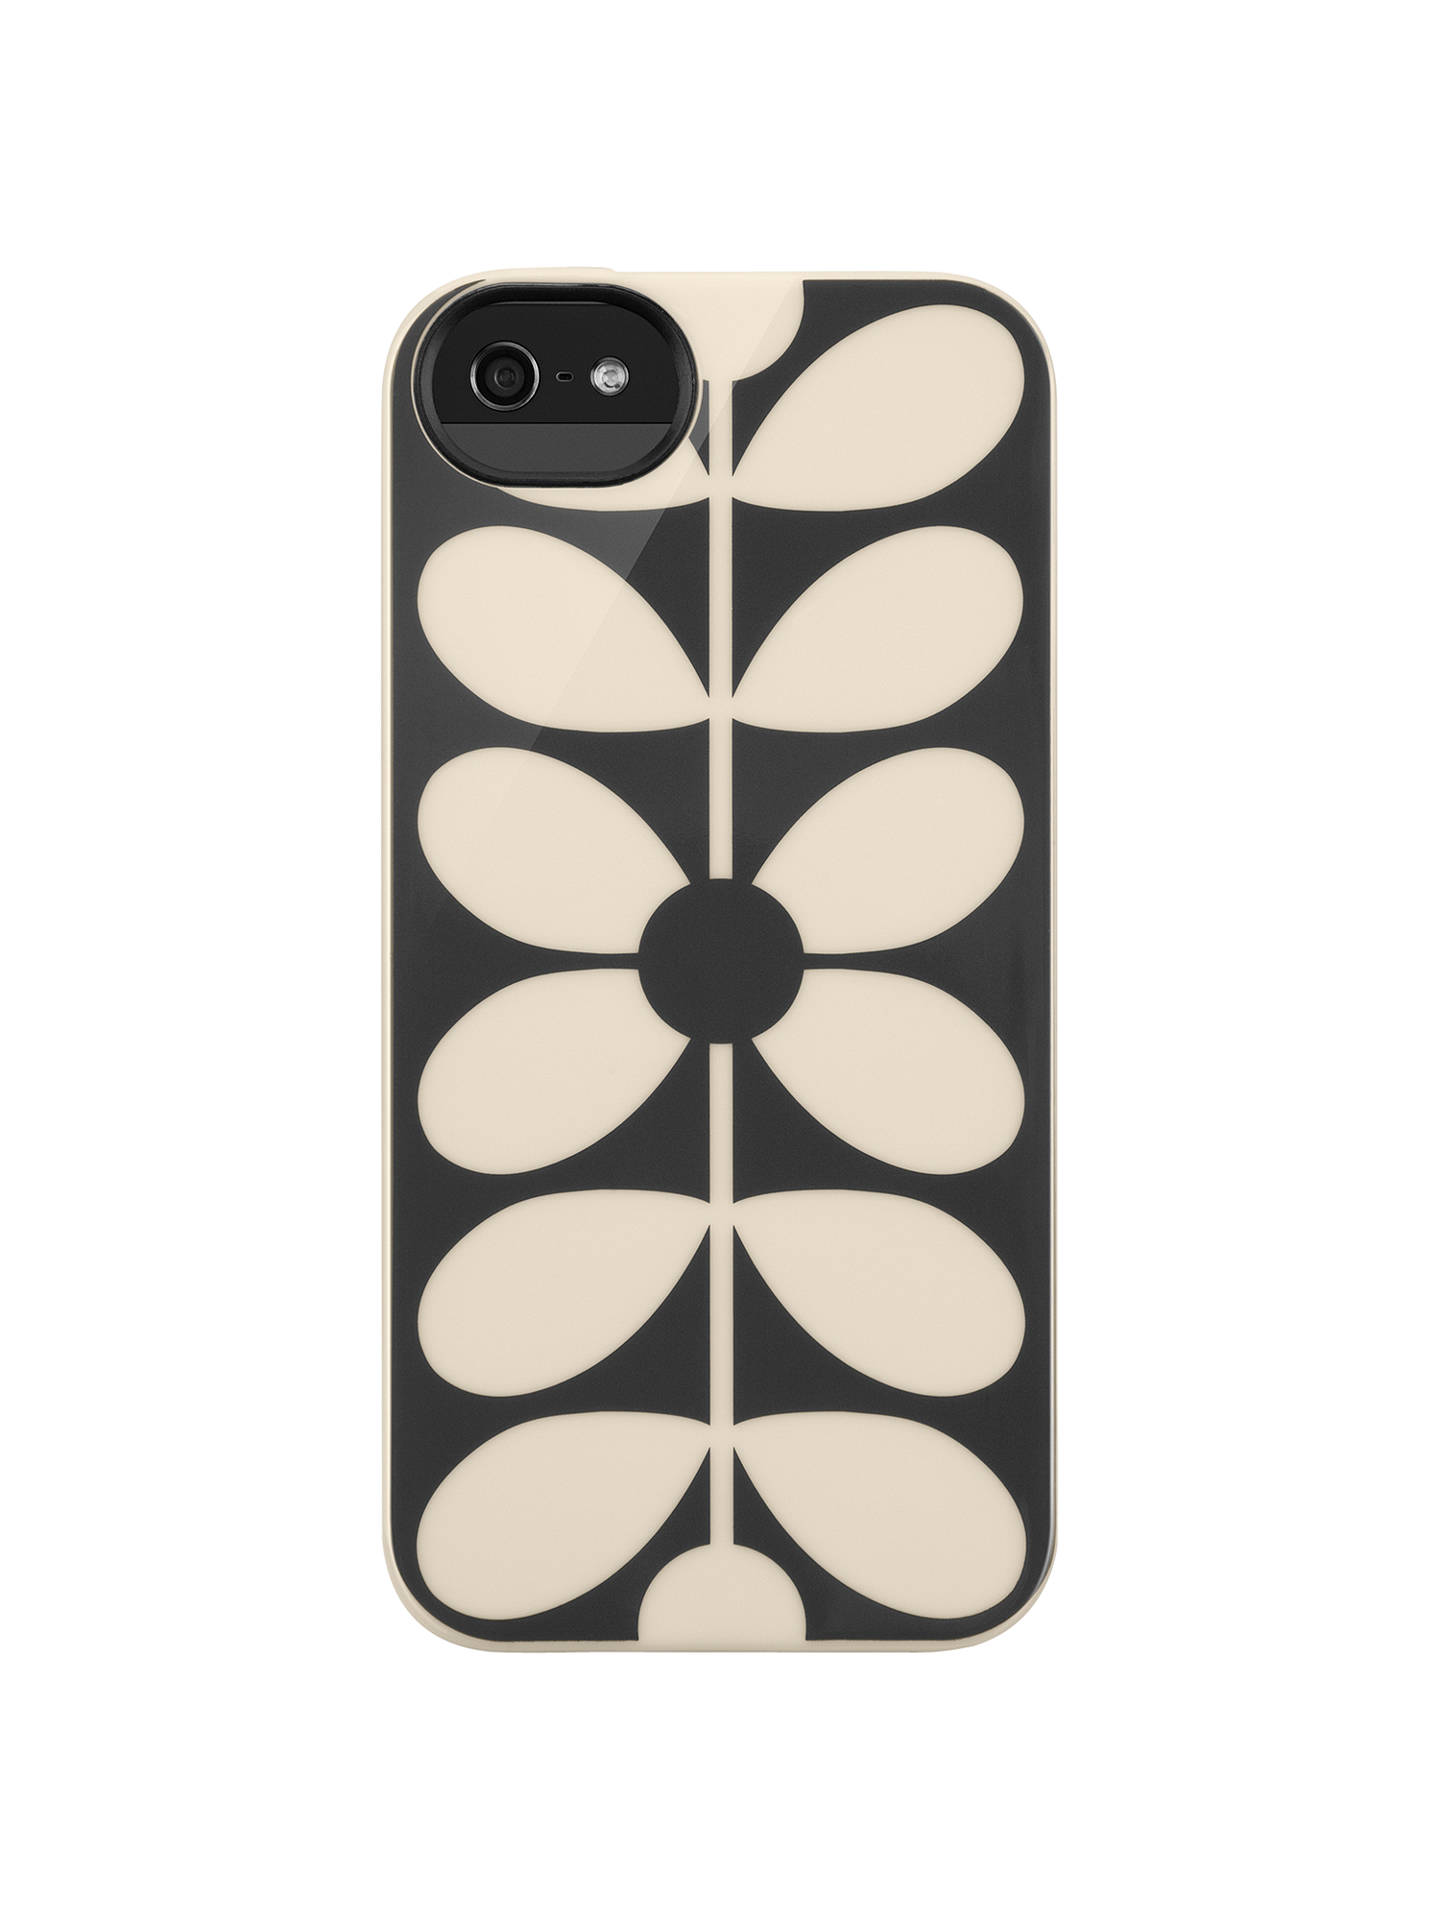 superior quality 6a952 95519 Orla Kiely Optic Stem Case for iPhone SE/5s/5 at John Lewis & Partners